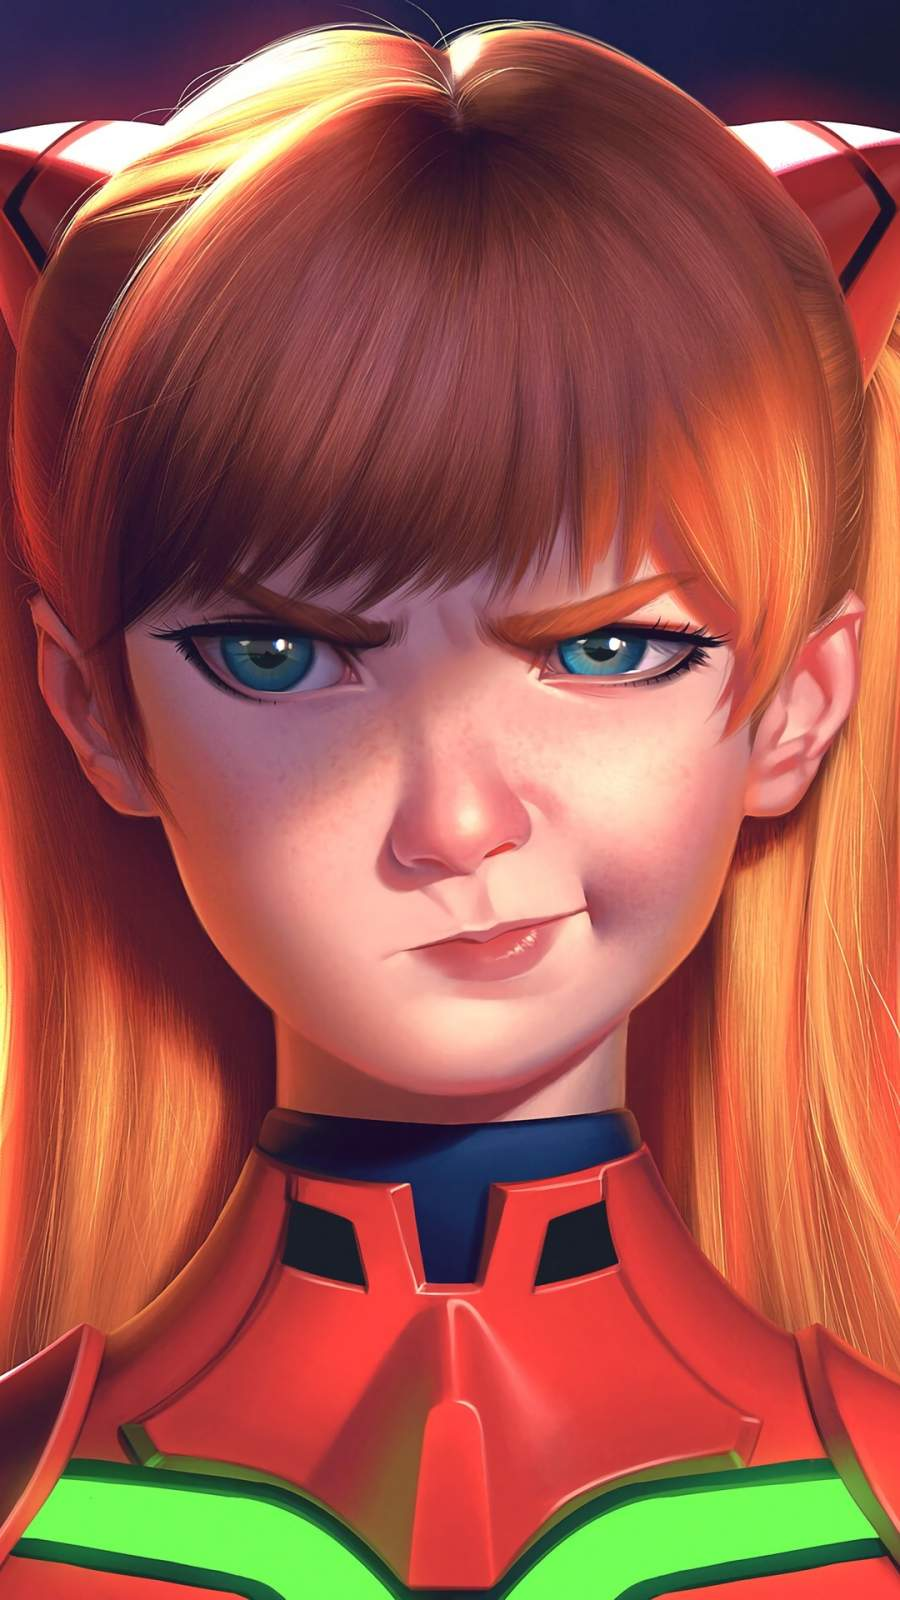 Asuka Langley Soryu iPhone Wallpaper